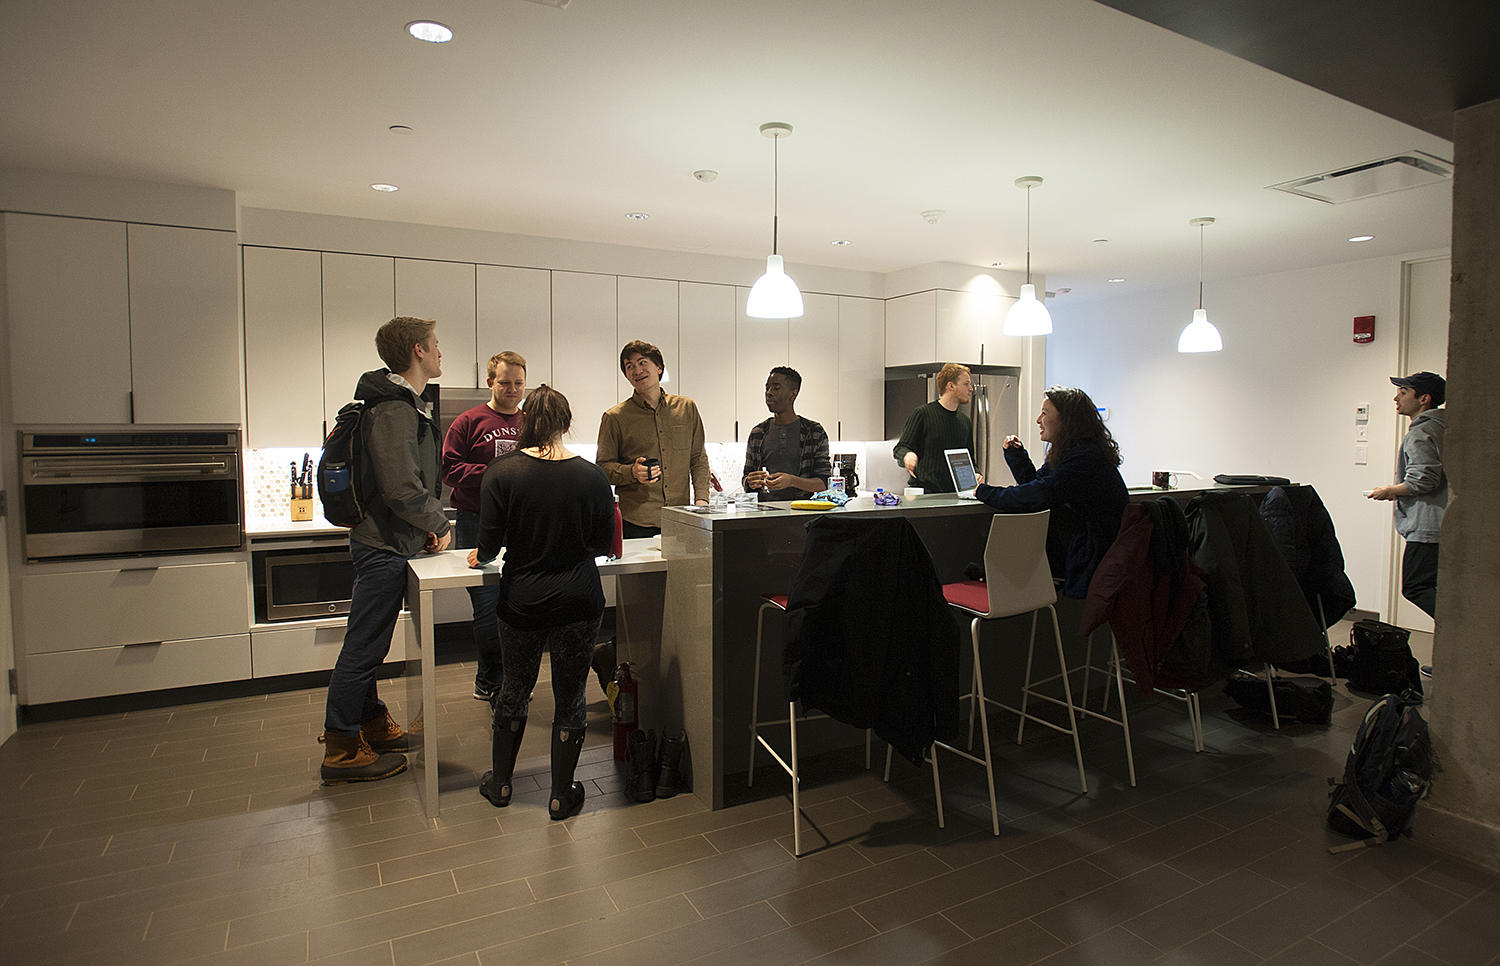 Members of the Harvard University Choir socialize in the new kitchen before rehearsal